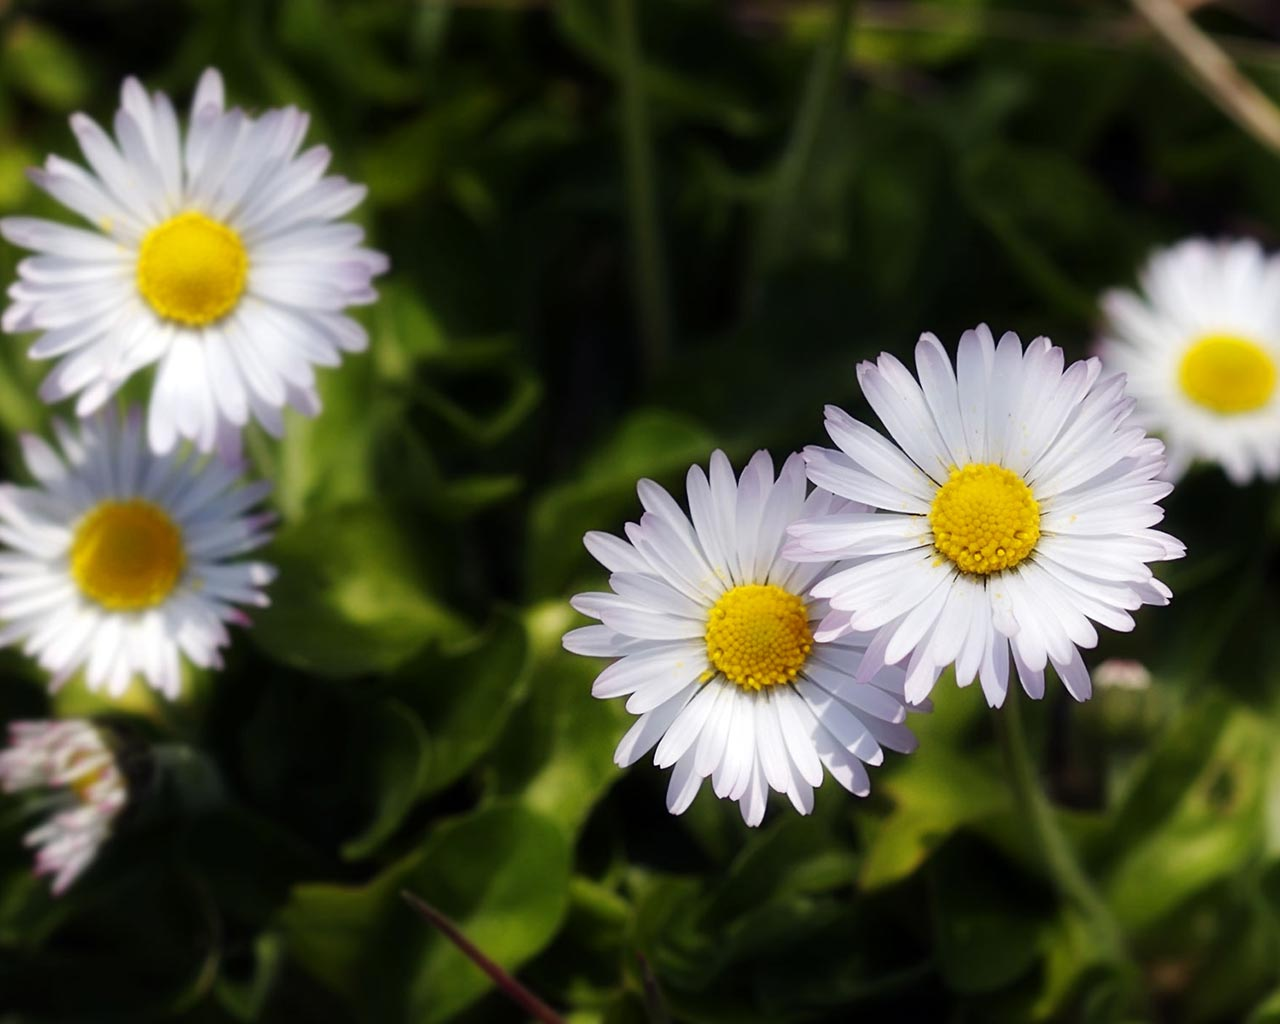 daisy meadow background highresoution white rose photos